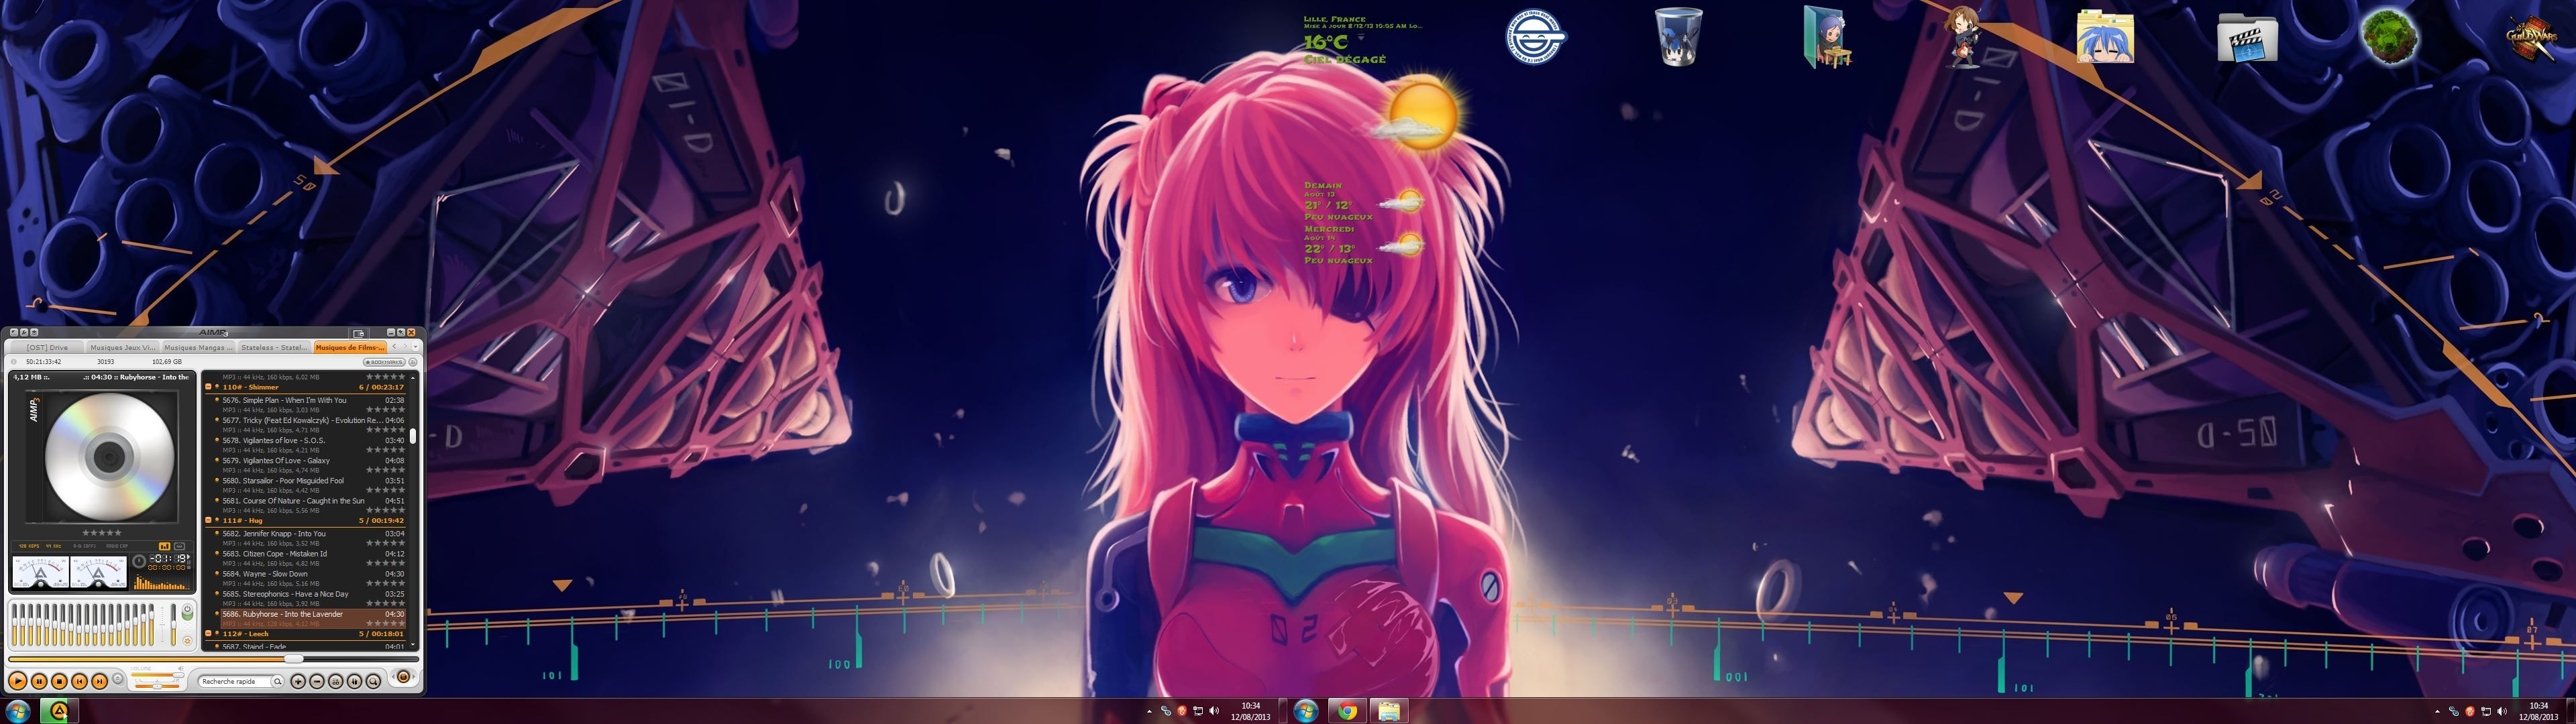 asuka wallpaper on dual screen with displayfusion